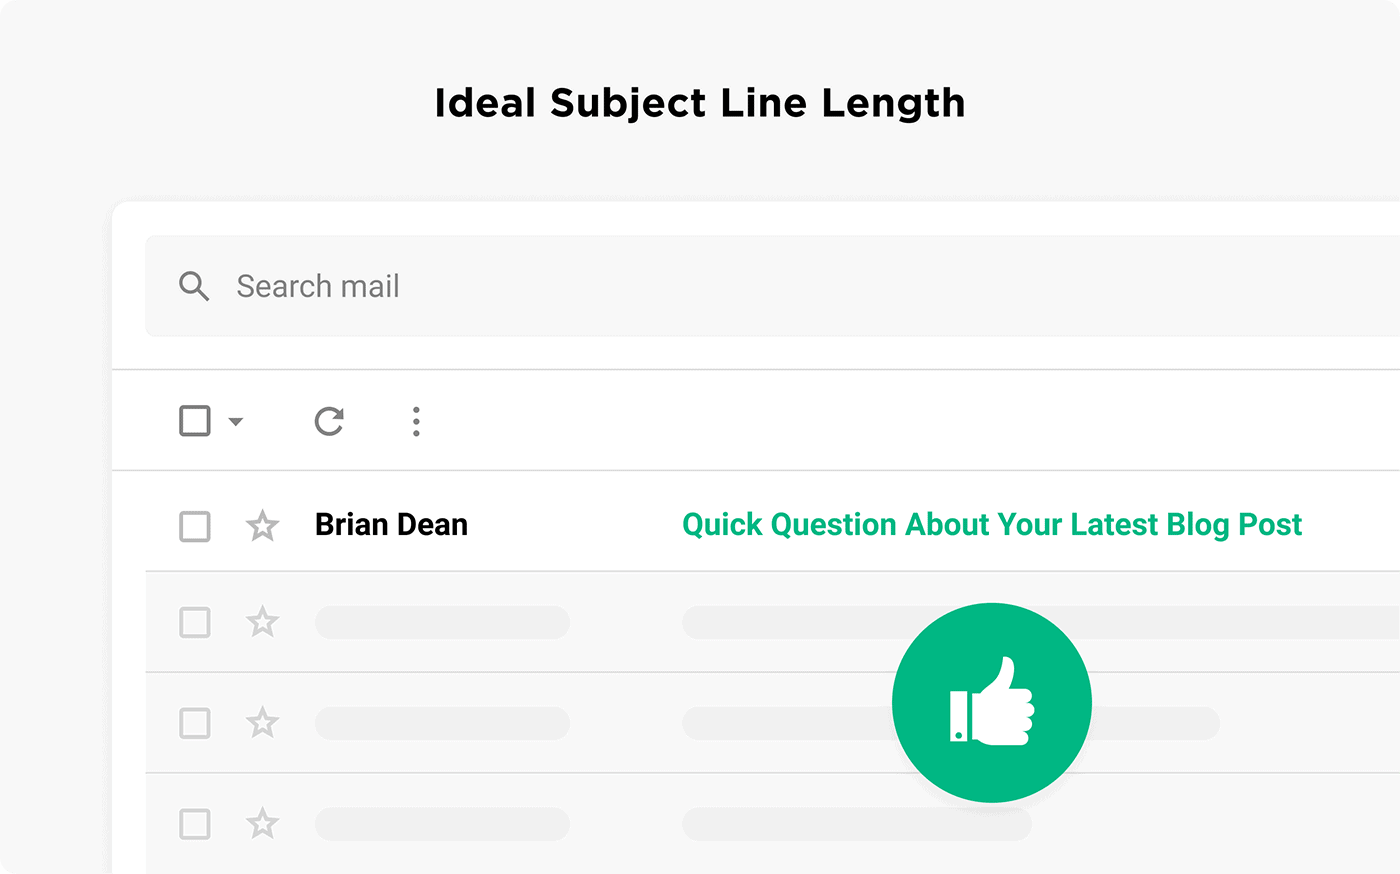 Ideal subject line length